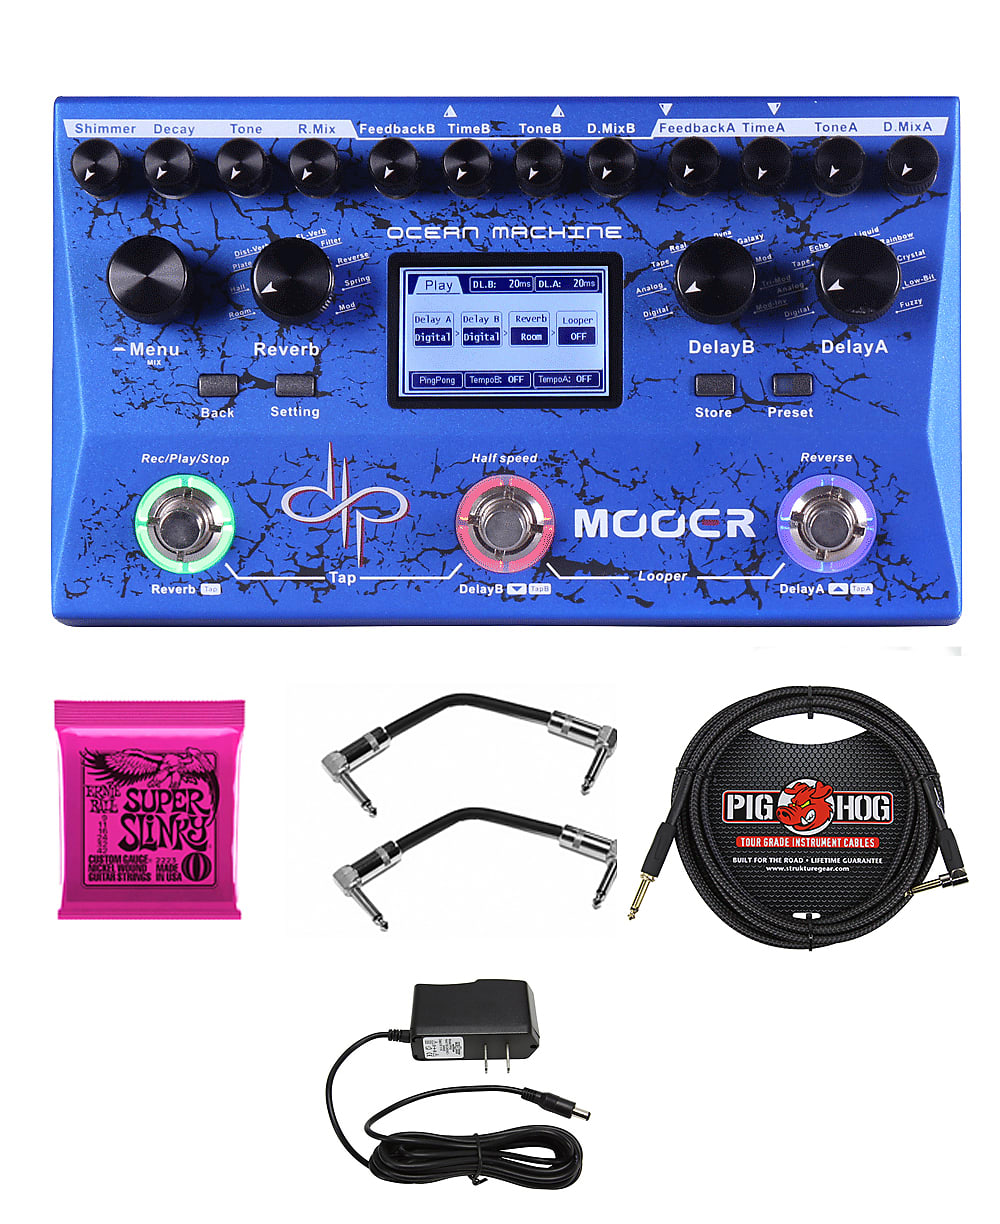 Mooer Ocean Machine Devin Townsend Signature Pedal/AC Adapter/I Pig Hog Cable/Patch Cables/Strings